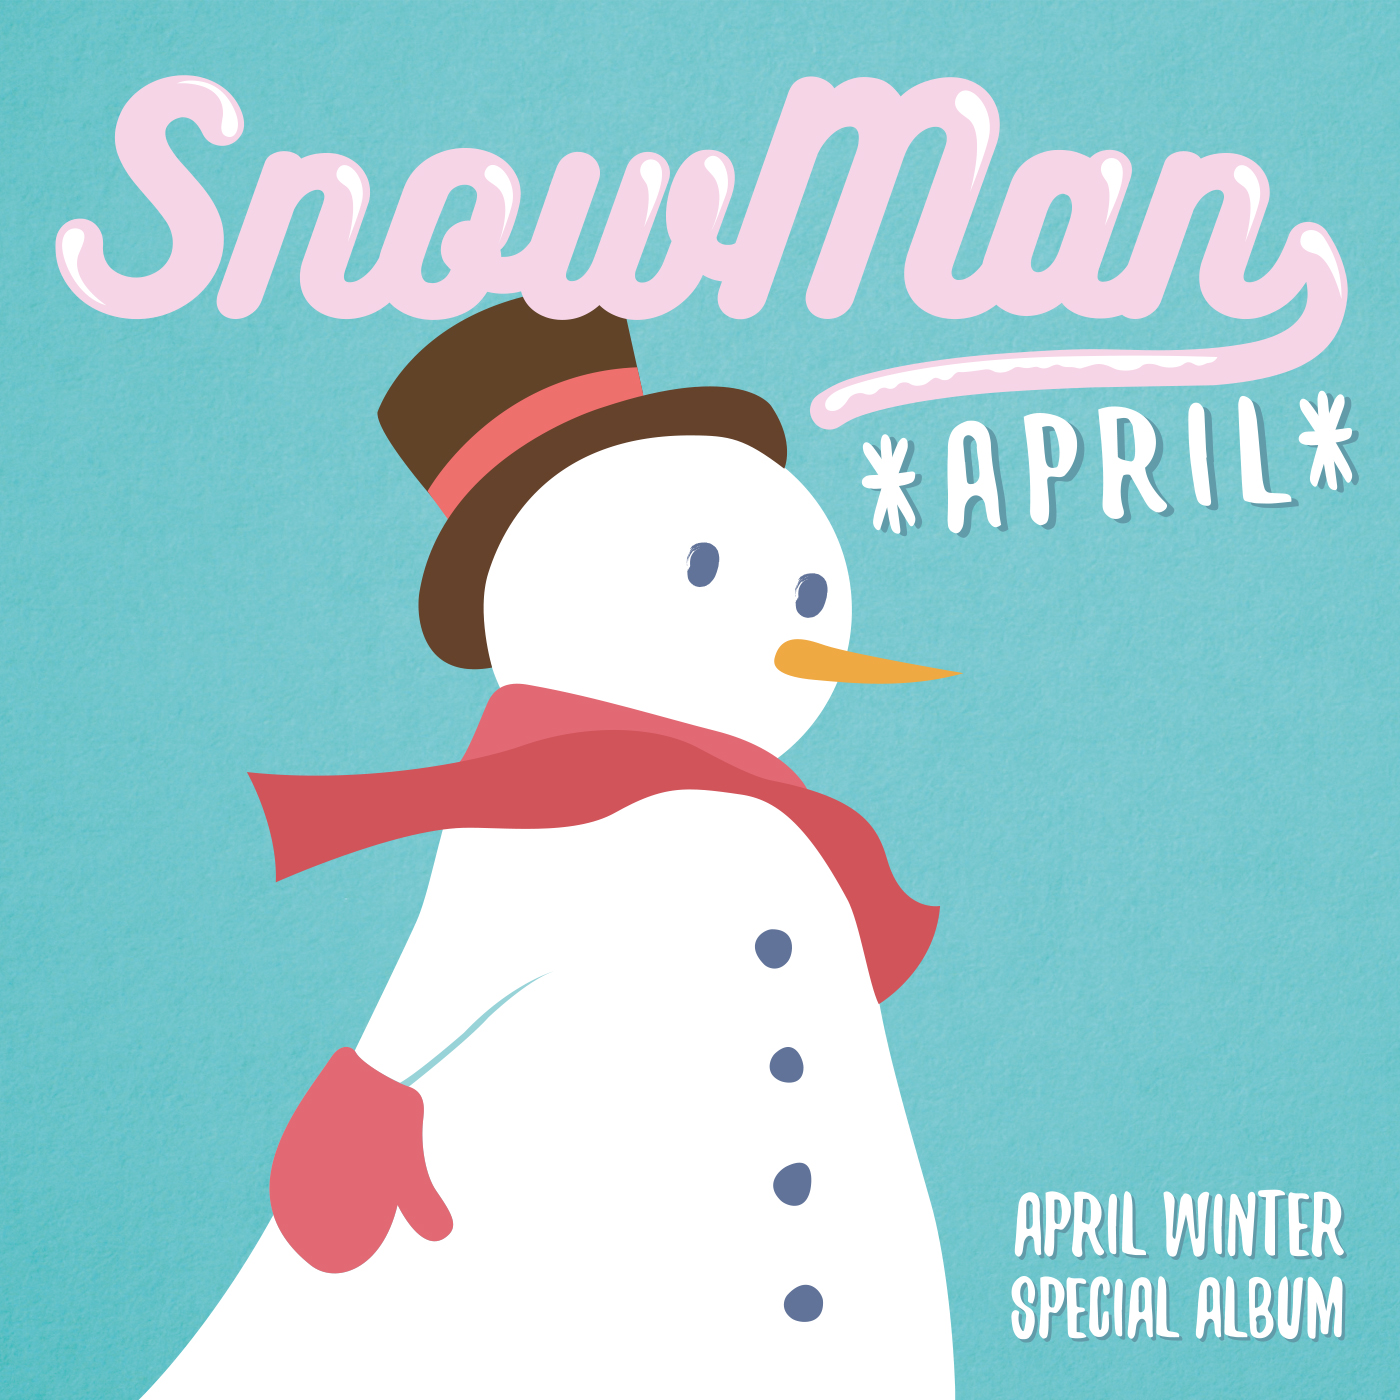 [APRIL] Winter Special Album